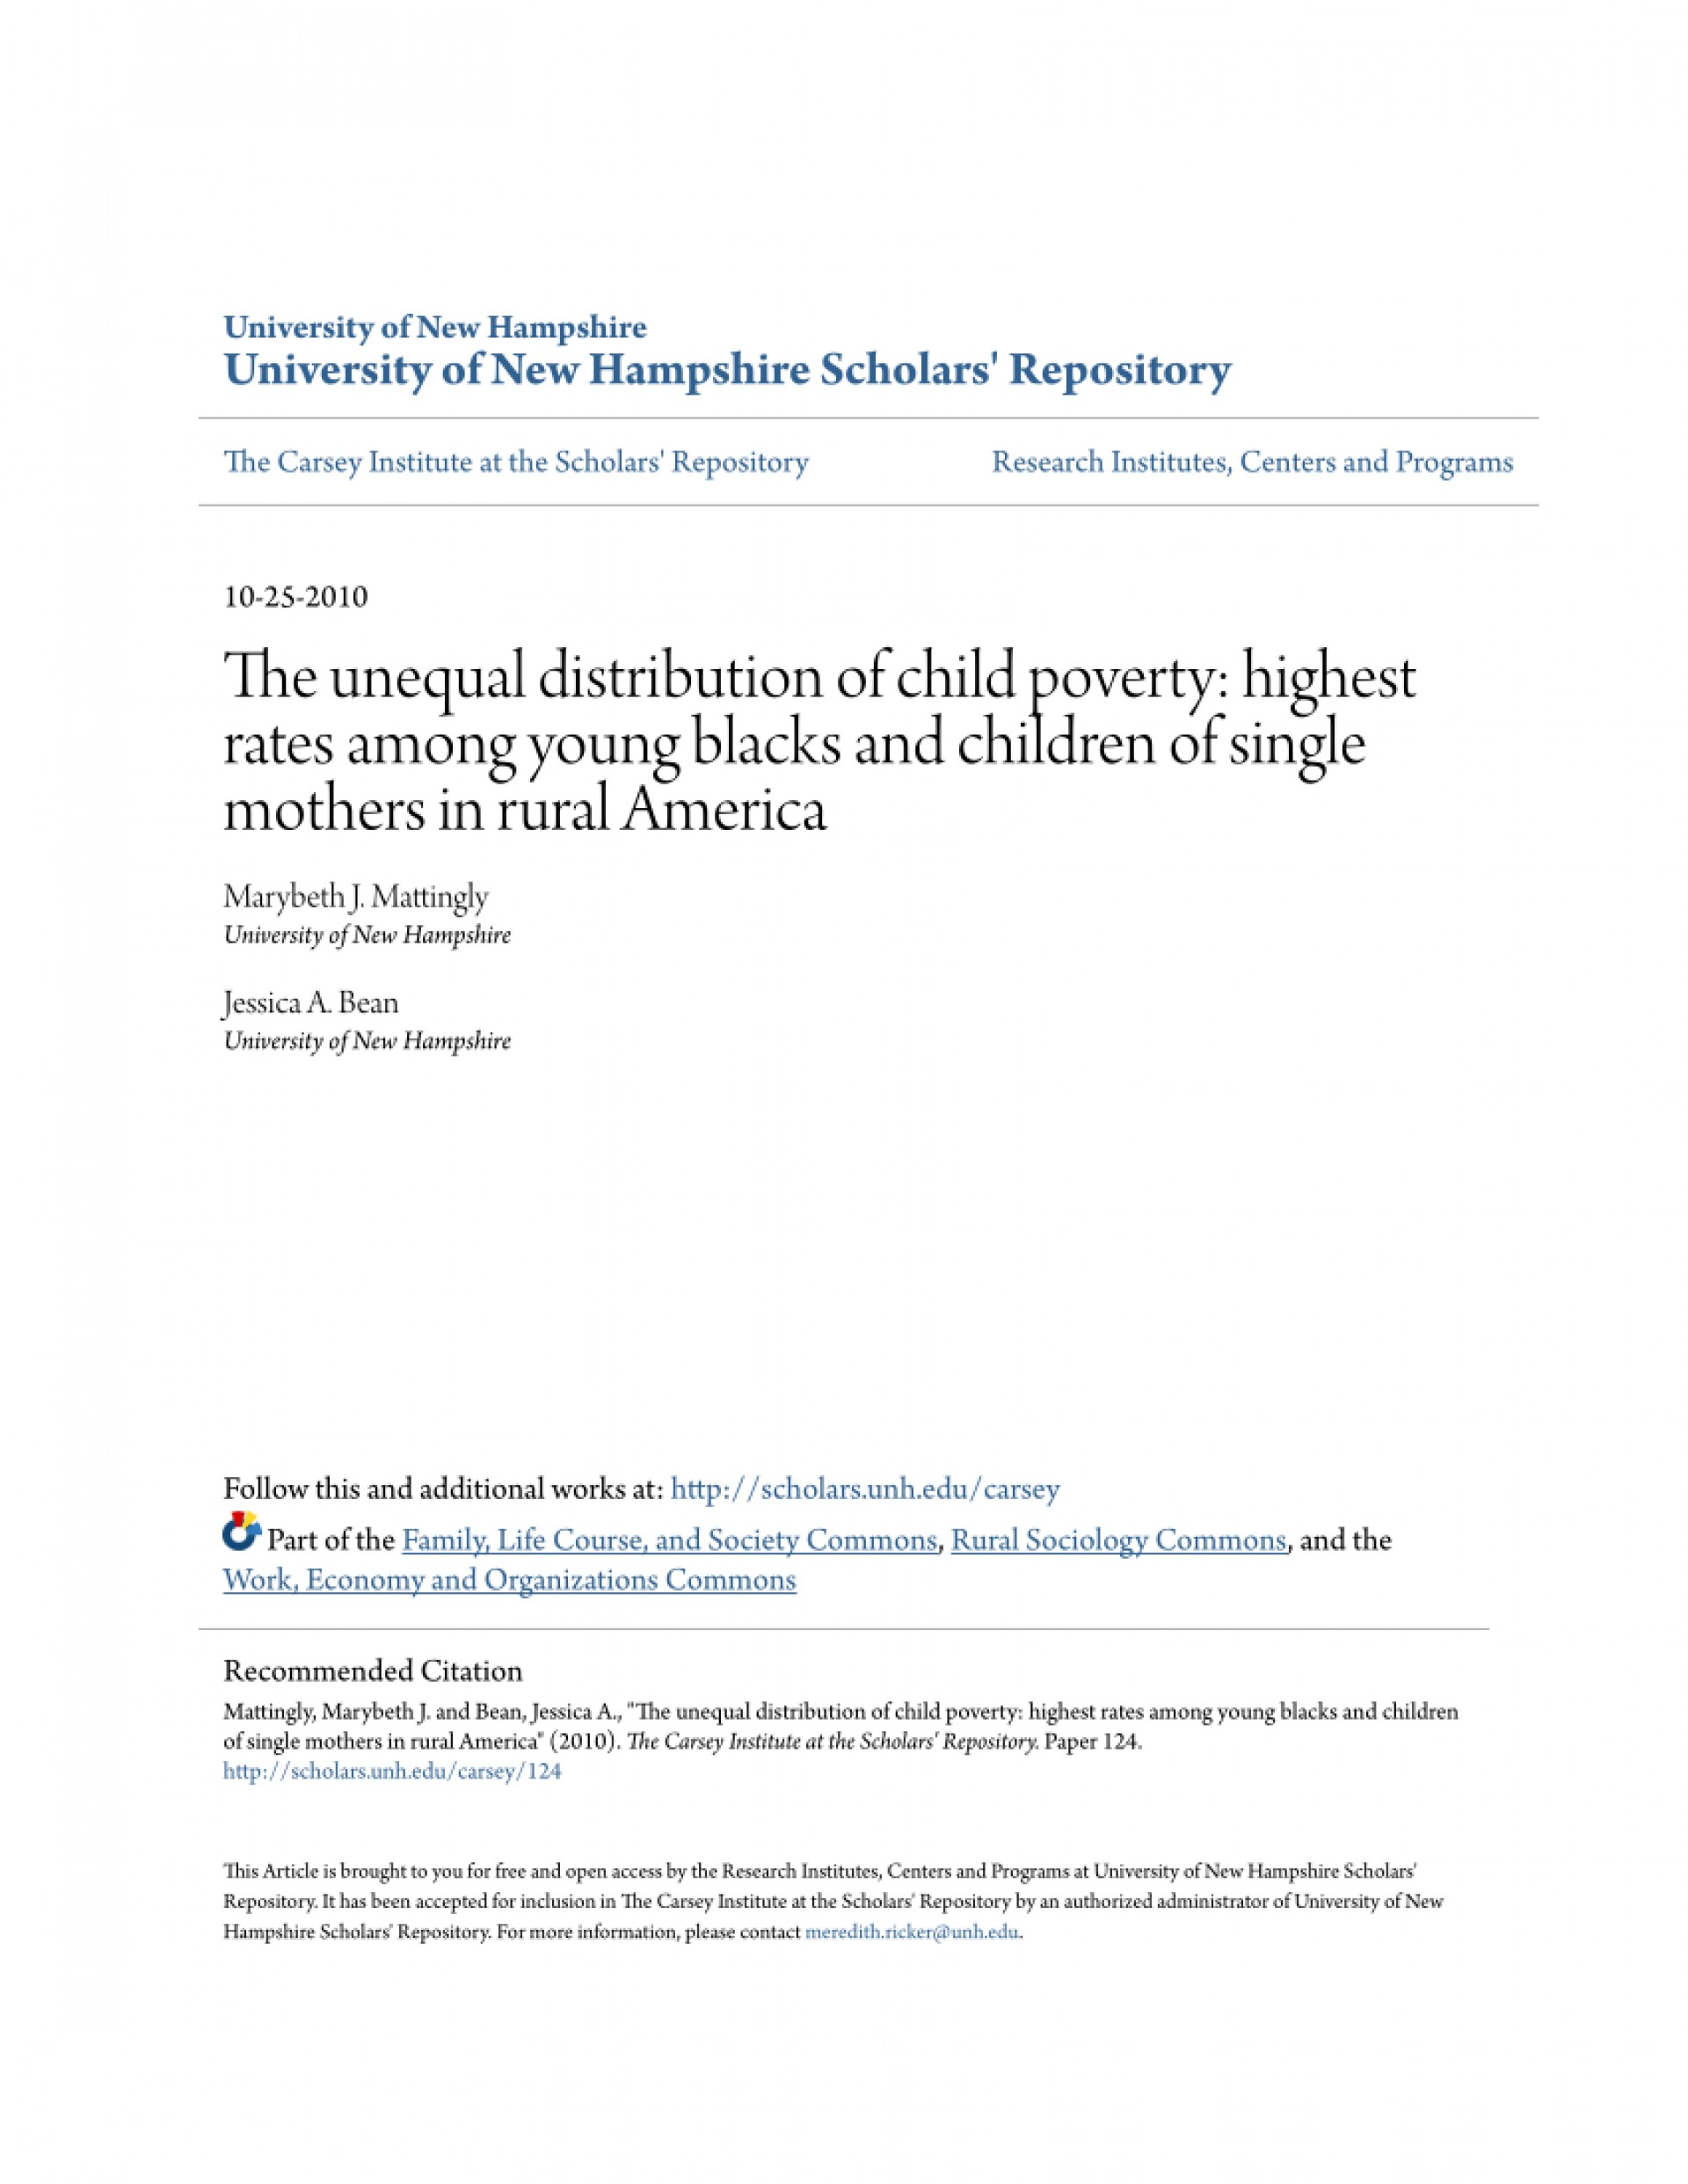 006 Research Paper Largepreview Free On Poverty In Formidable America 1920